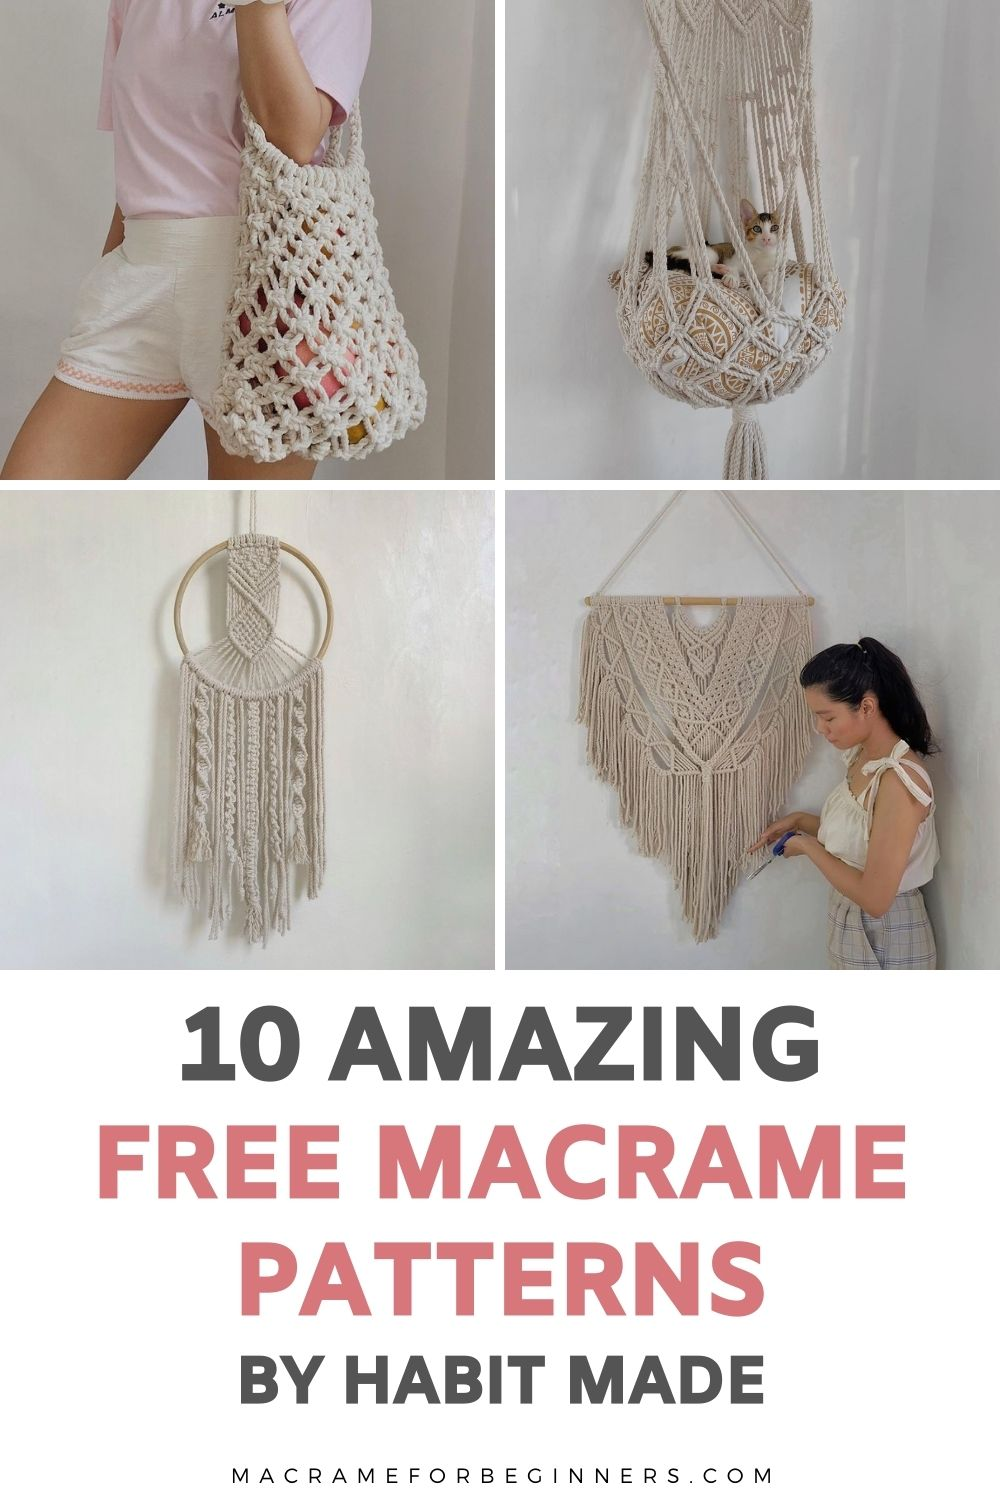 10 Gorgeous Free DIY Macrame Projects by Habit Made - Macrame for Beginners - Free Patterns